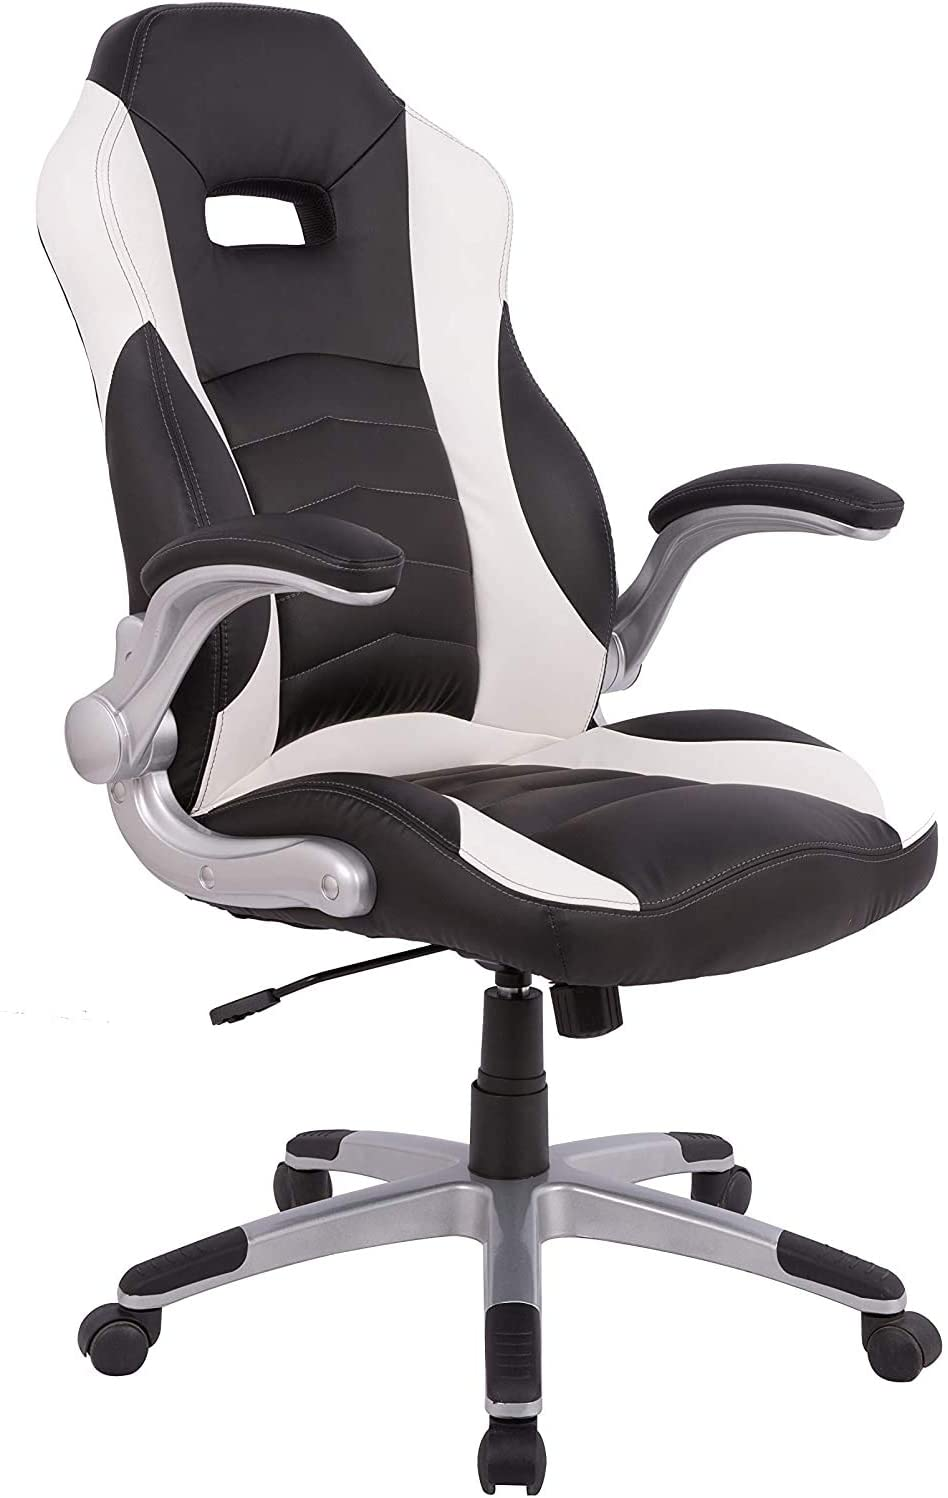 Gaming Chair Ergonomic with High Back Adjustable Height and Armrest for Office Computer Desk Chair